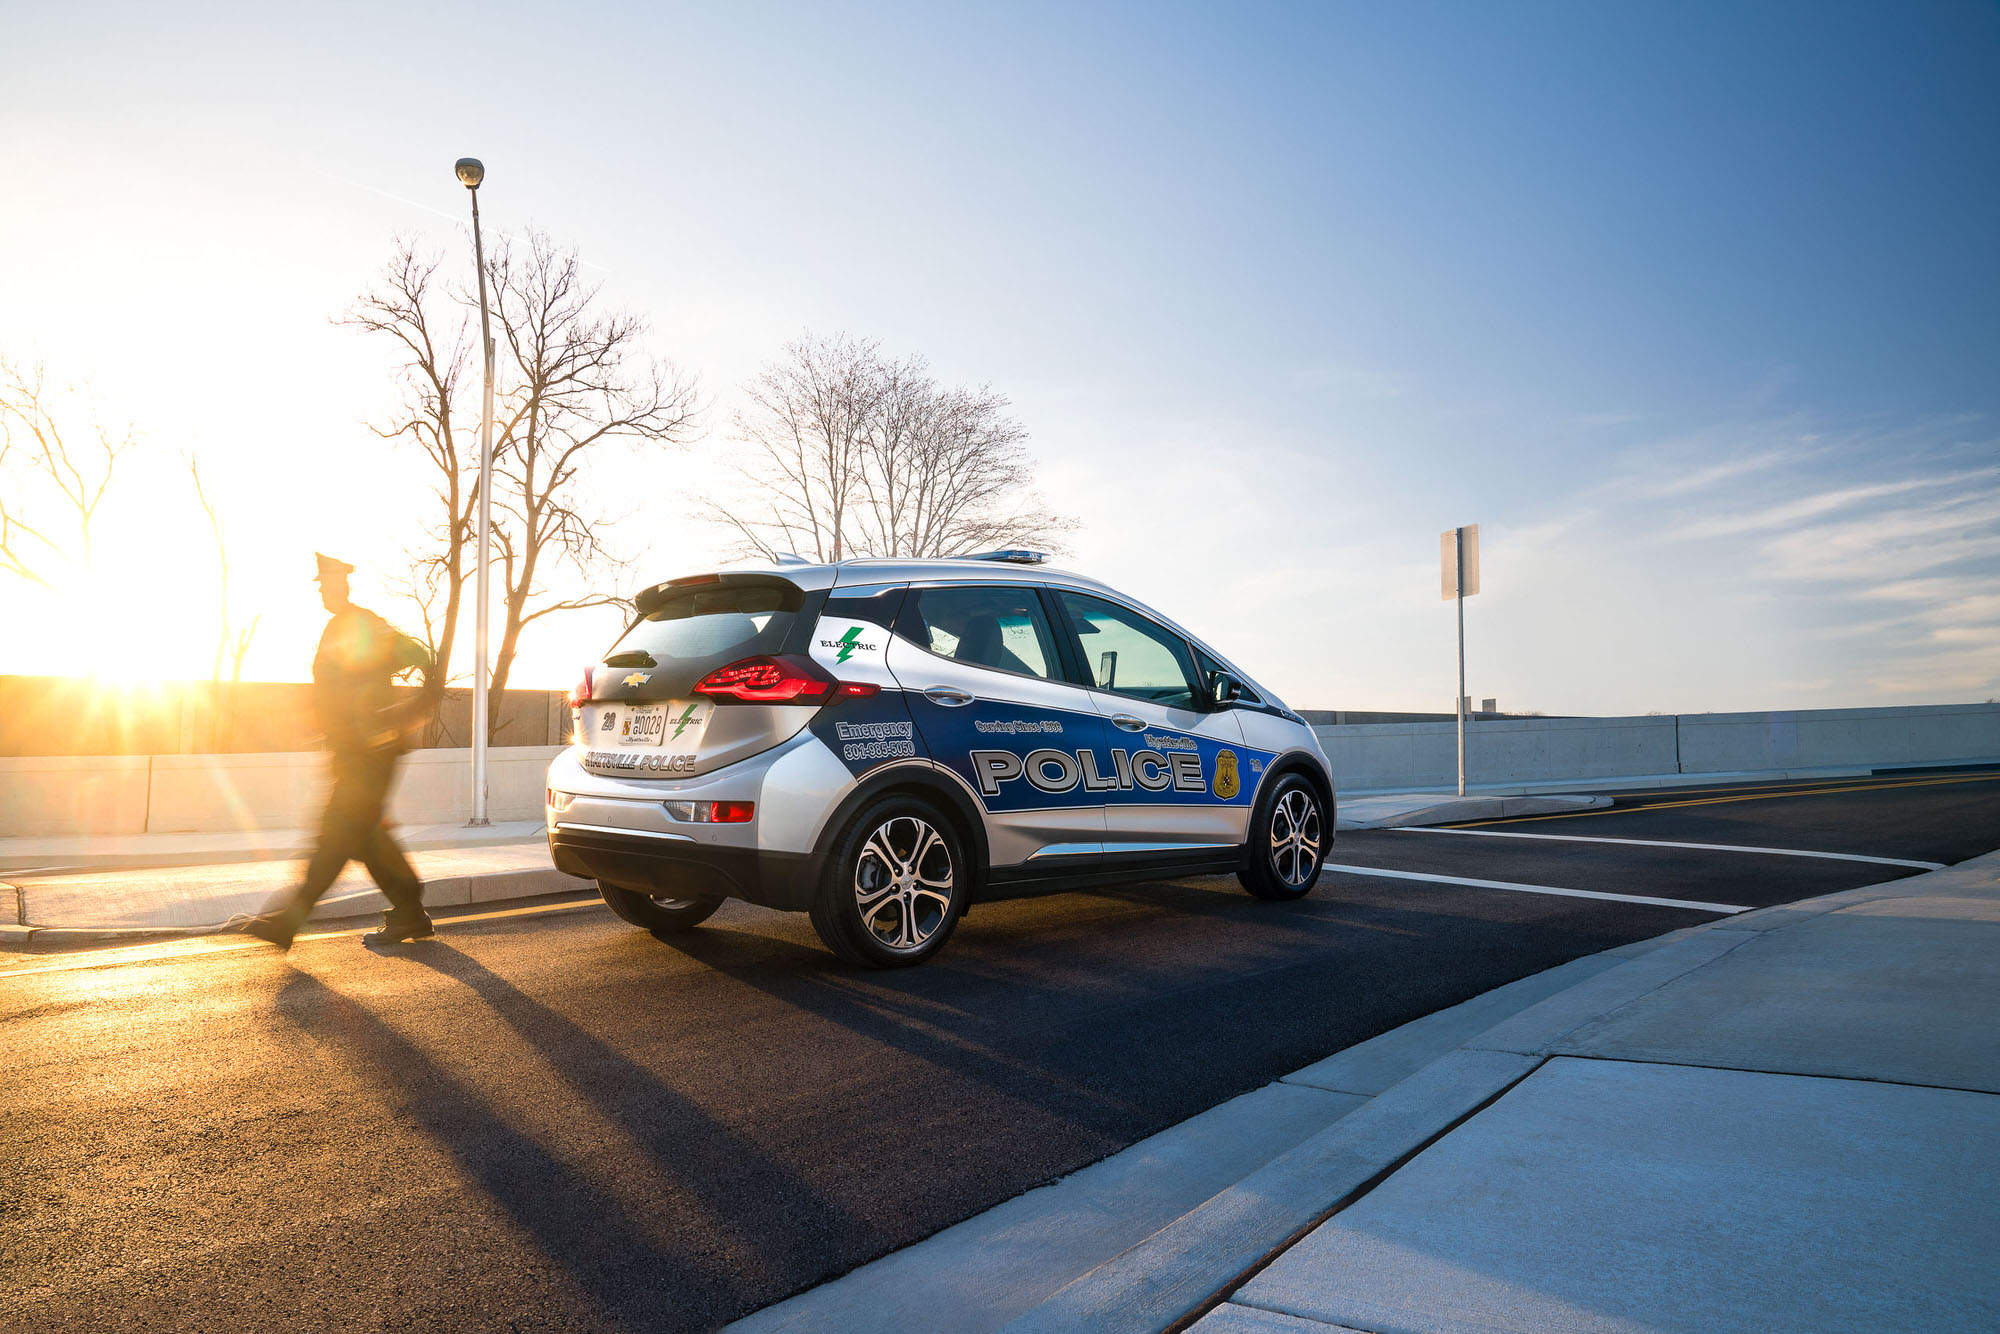 Police Chevrolet Bolt EV from Hyattsville Police Department in Maryland